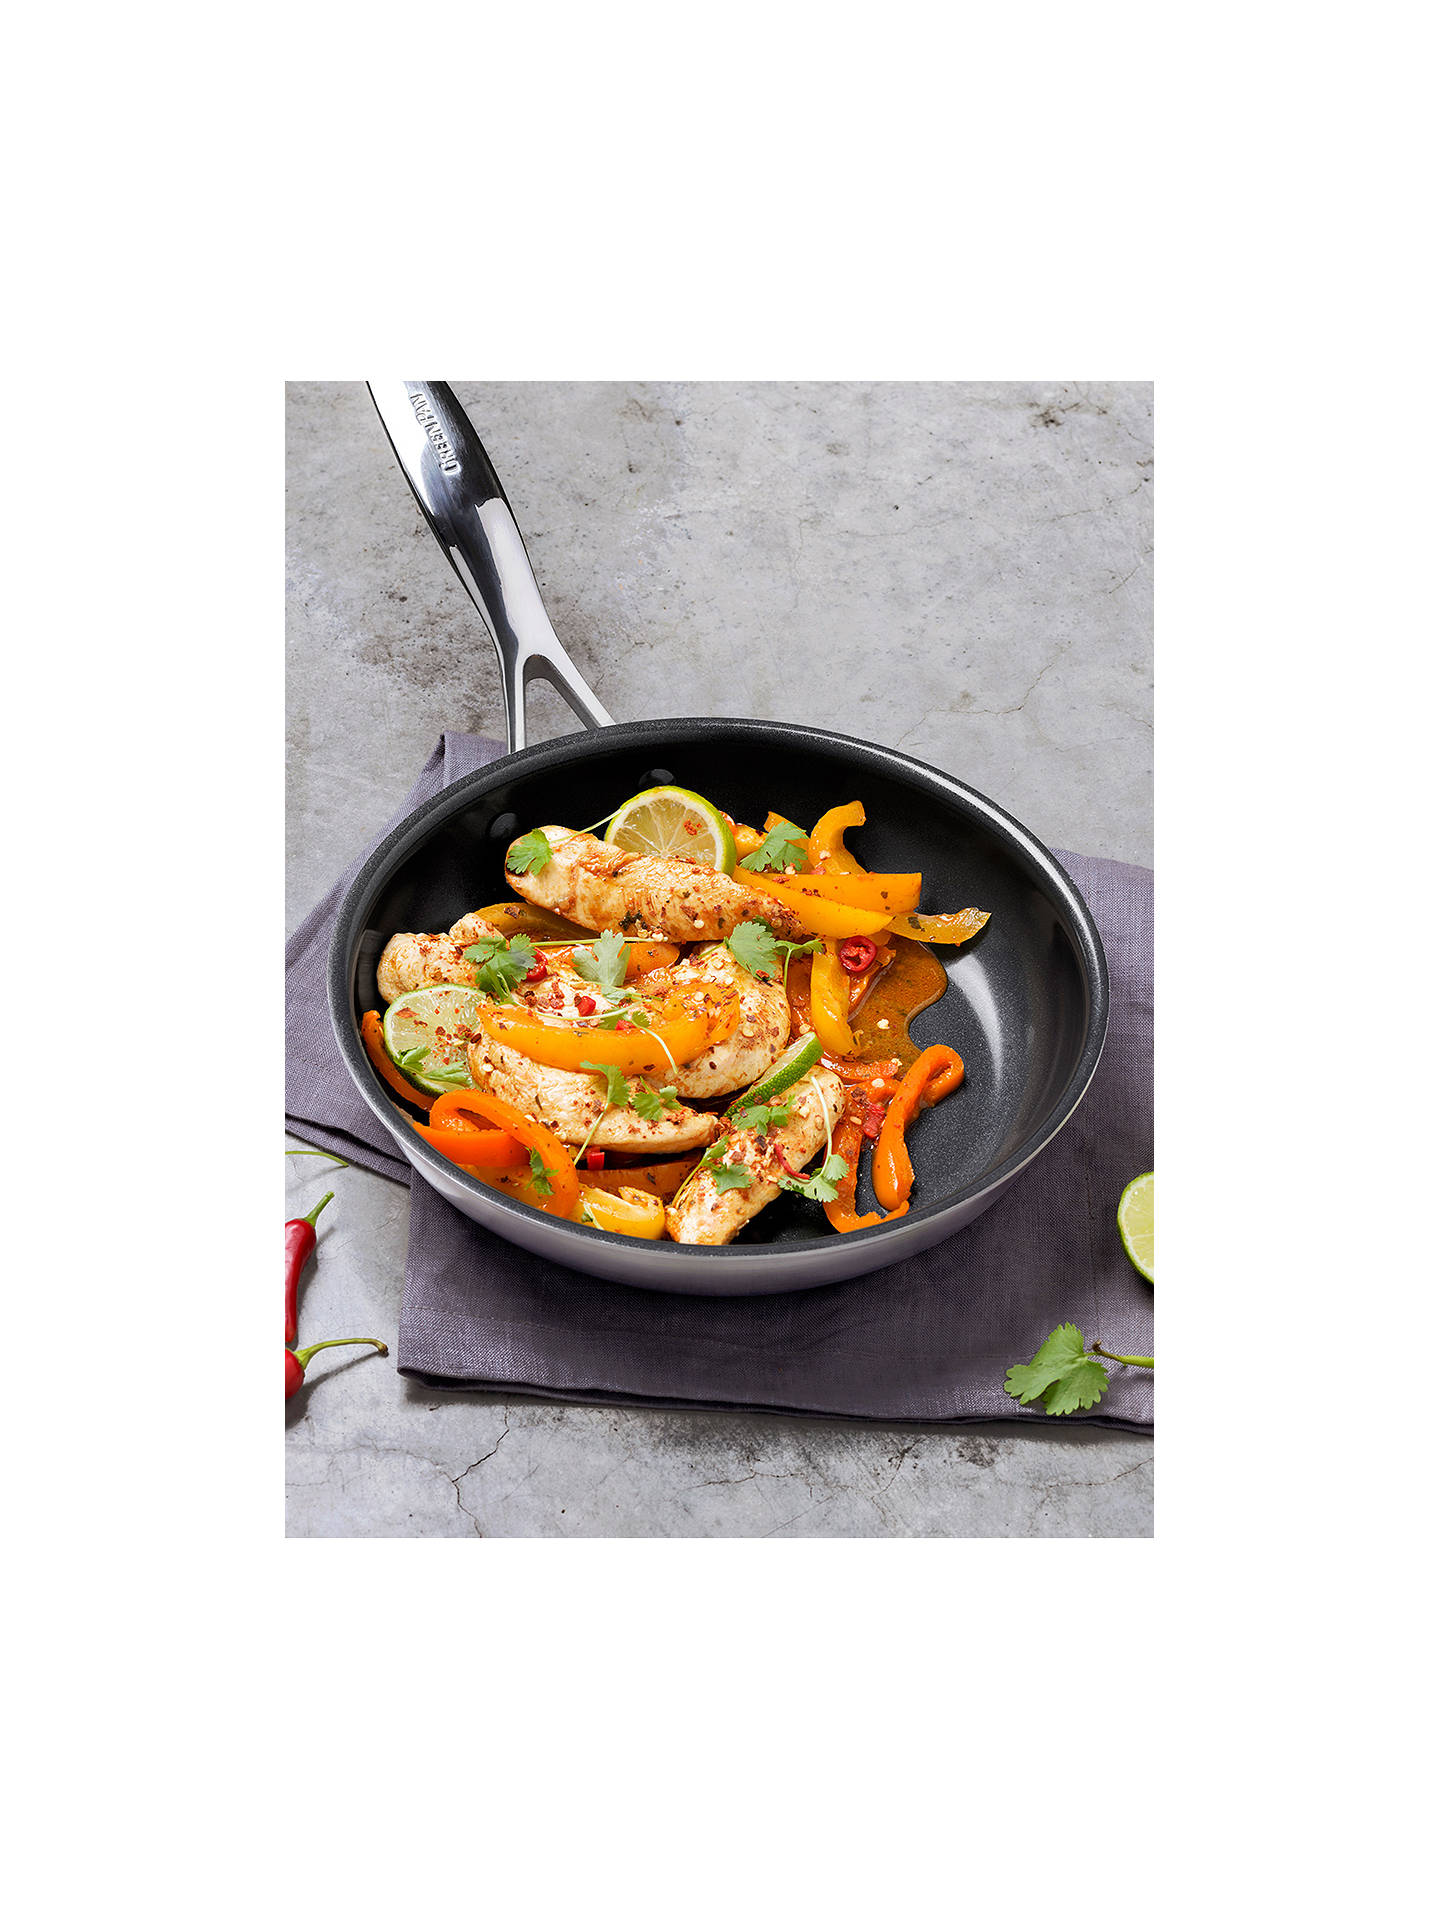 BuyGreenPan Elements Ceramic Non-Stick 24cm Frying Pan Online at johnlewis.com